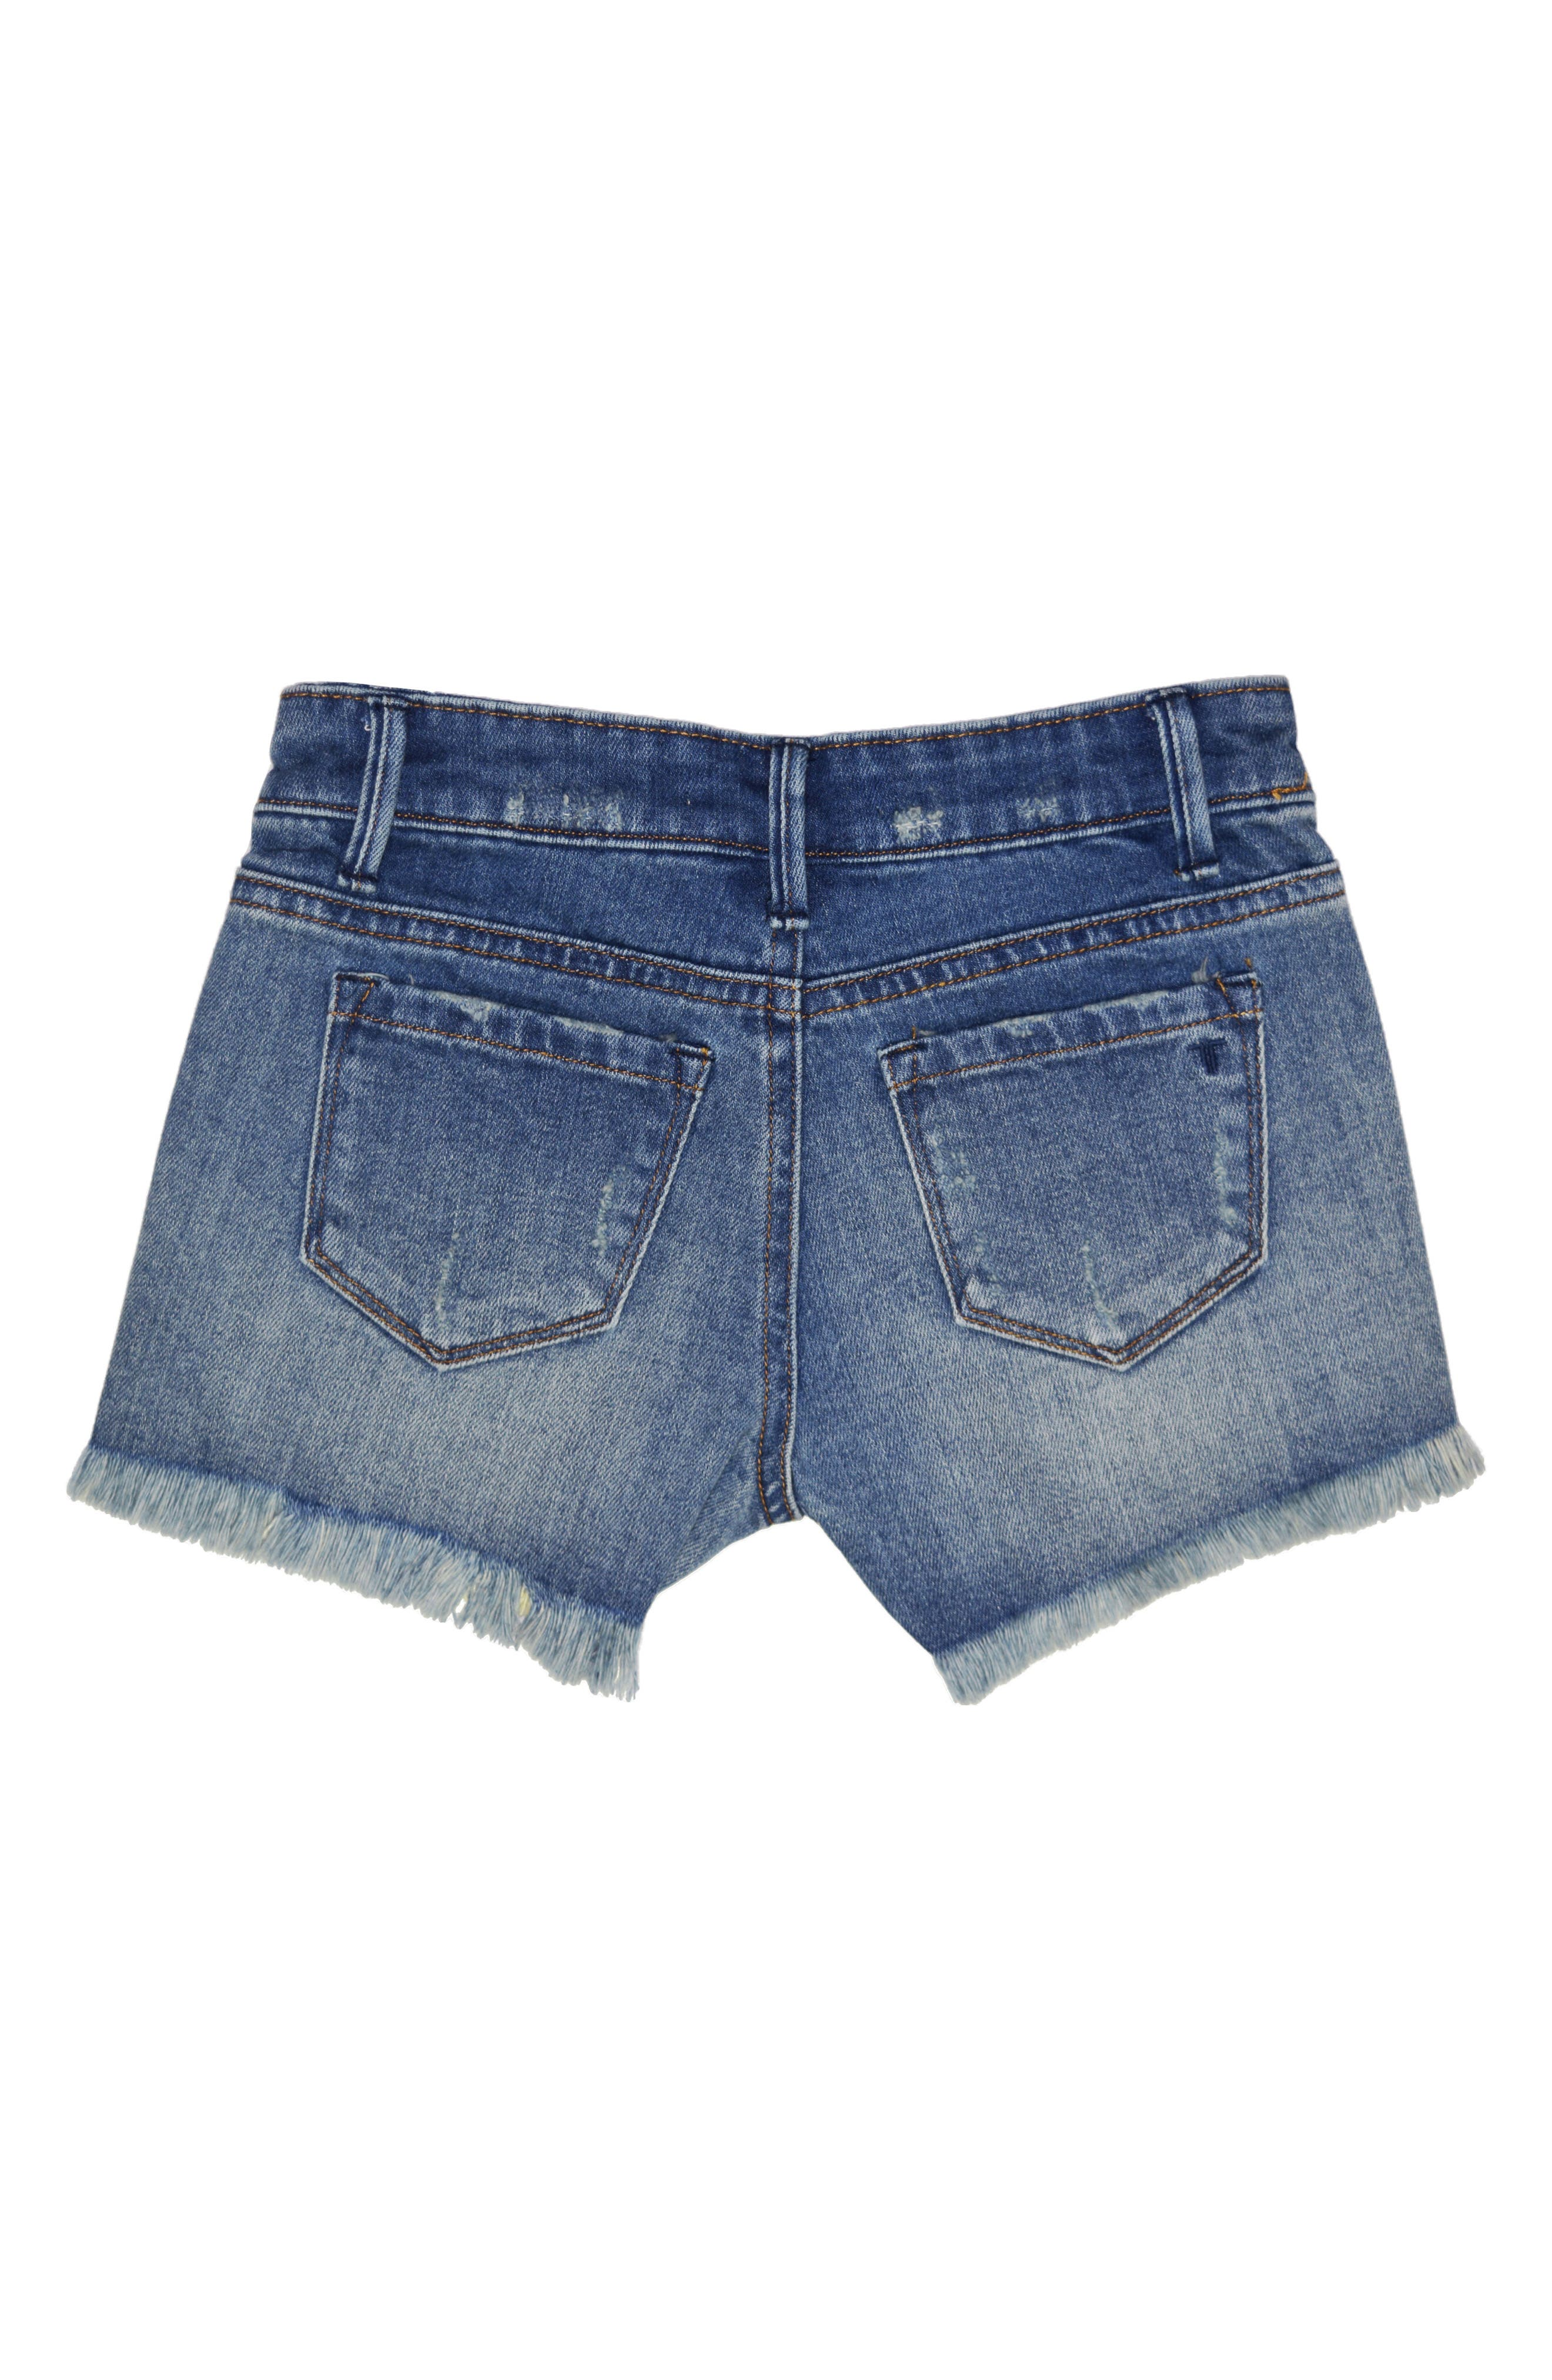 Beaded Distressed Denim Shorts,                             Alternate thumbnail 2, color,                             Indigo